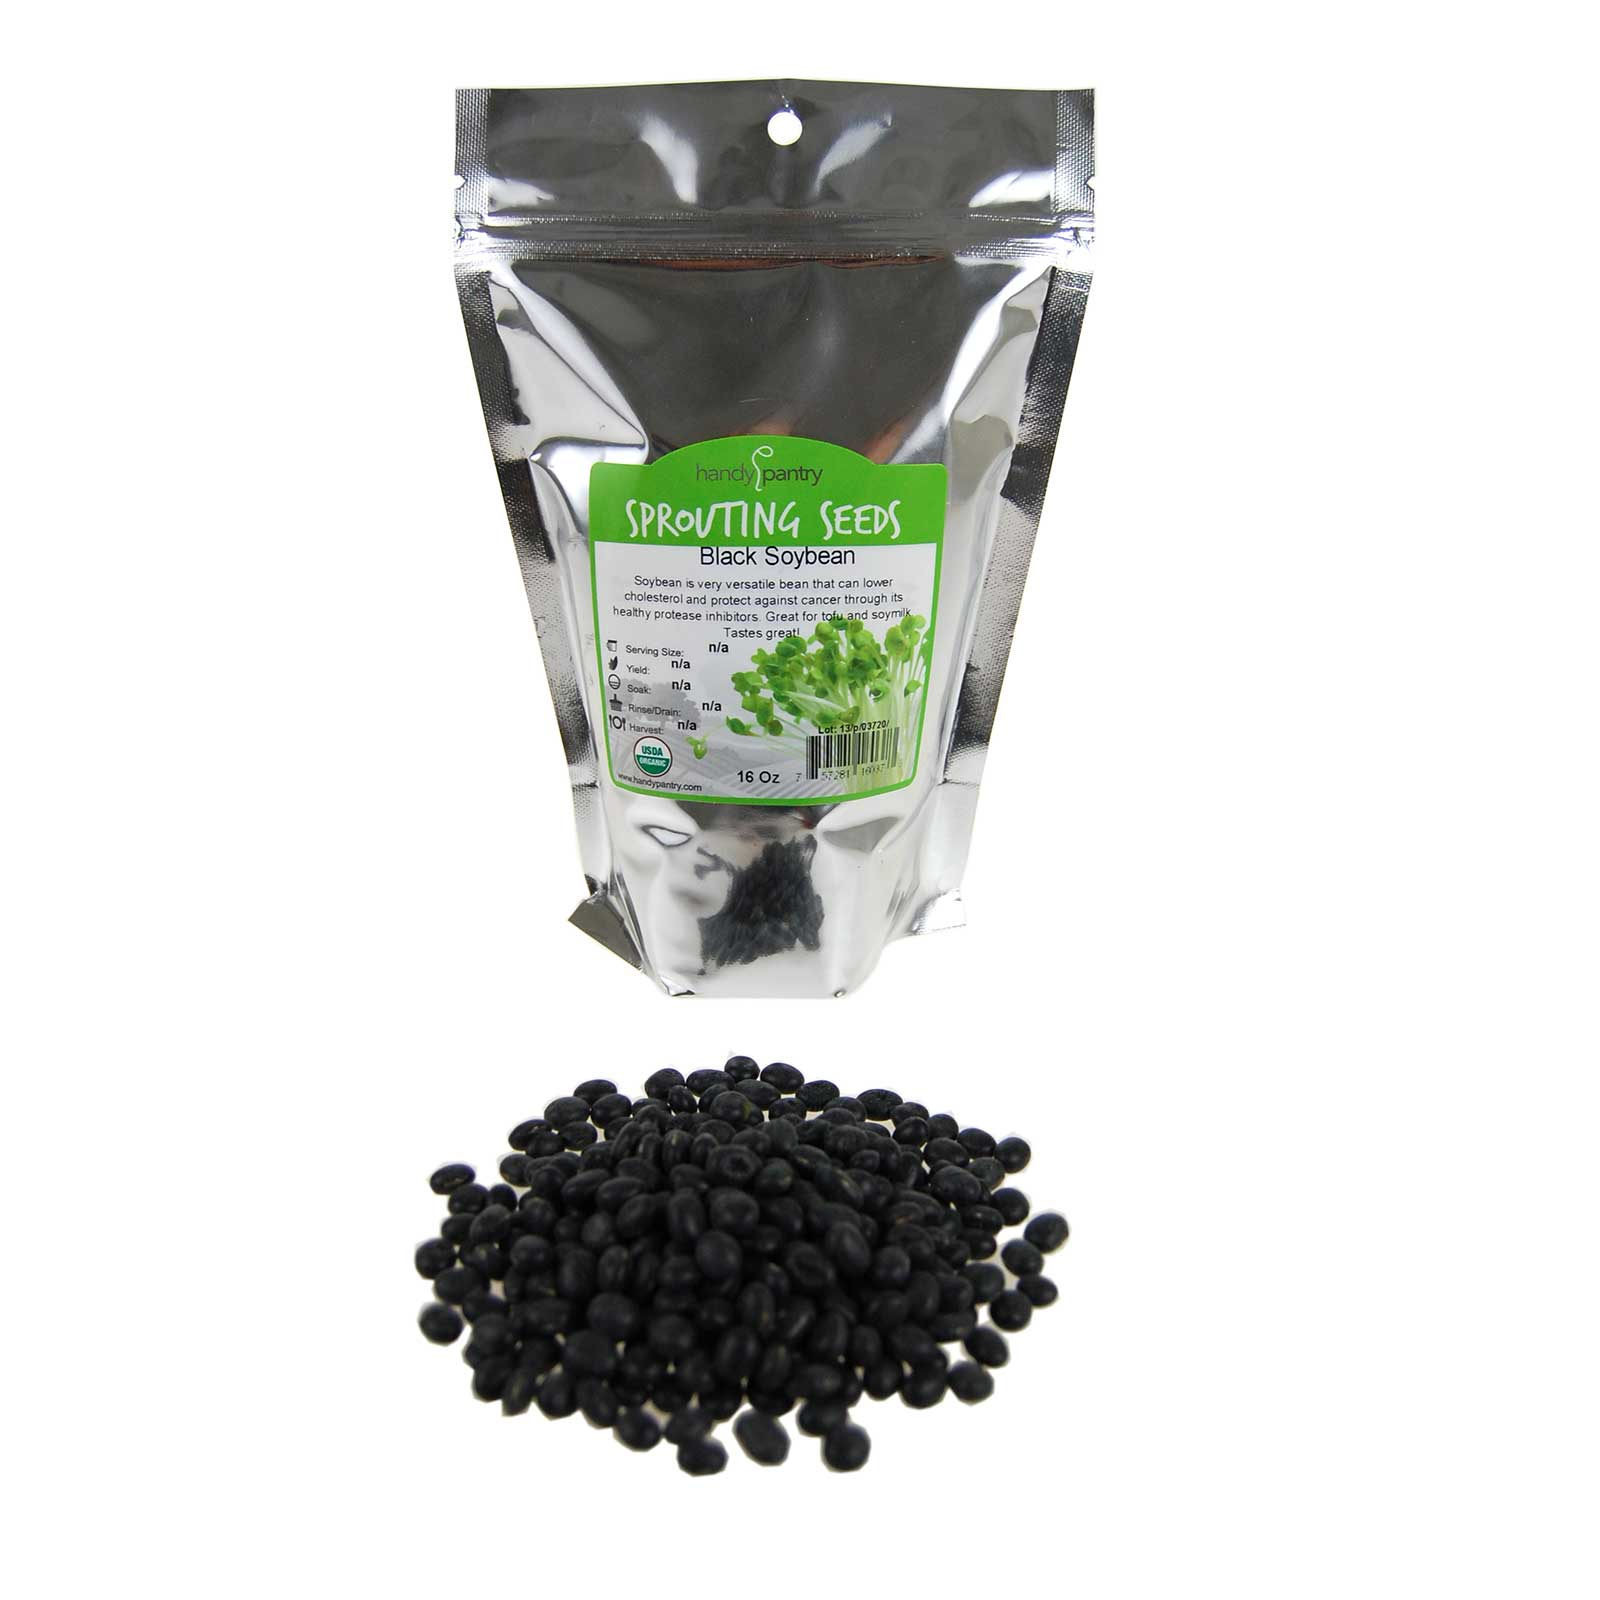 Organic Black Soy Beans -1 Lb - Black Soybeans - Non-GMO - For Cooking, Making Tofu & Soymilk / Soya Milk